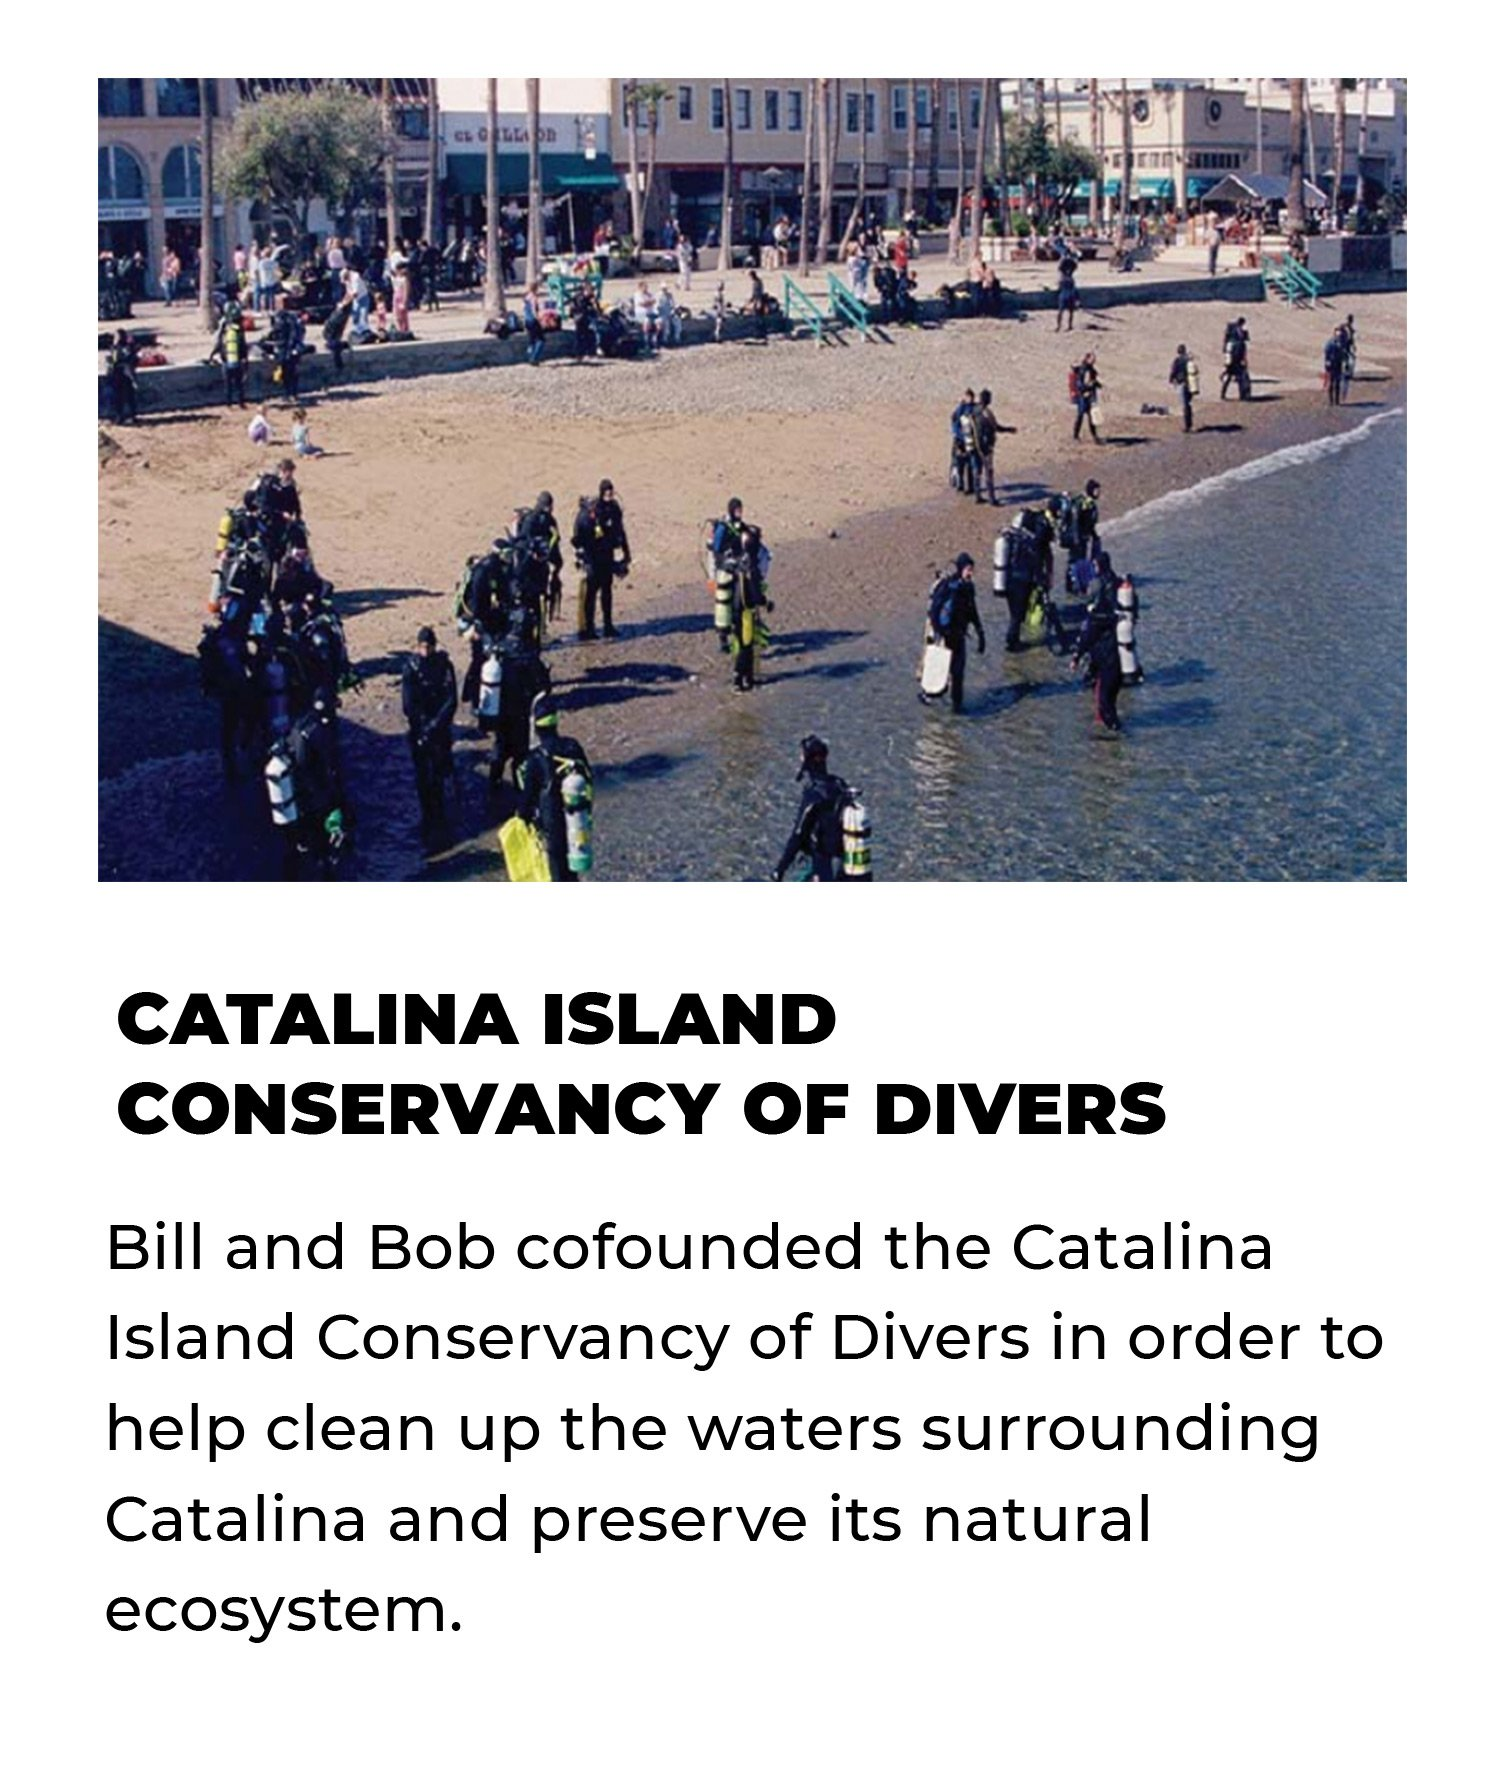 Catalina Island Conservancy of Divers | Bill and Bob cofounded the Catalina Island Conservancy of Divers in order to help clean up the waters surrounding Catalina and preserve its natural ecosystem.